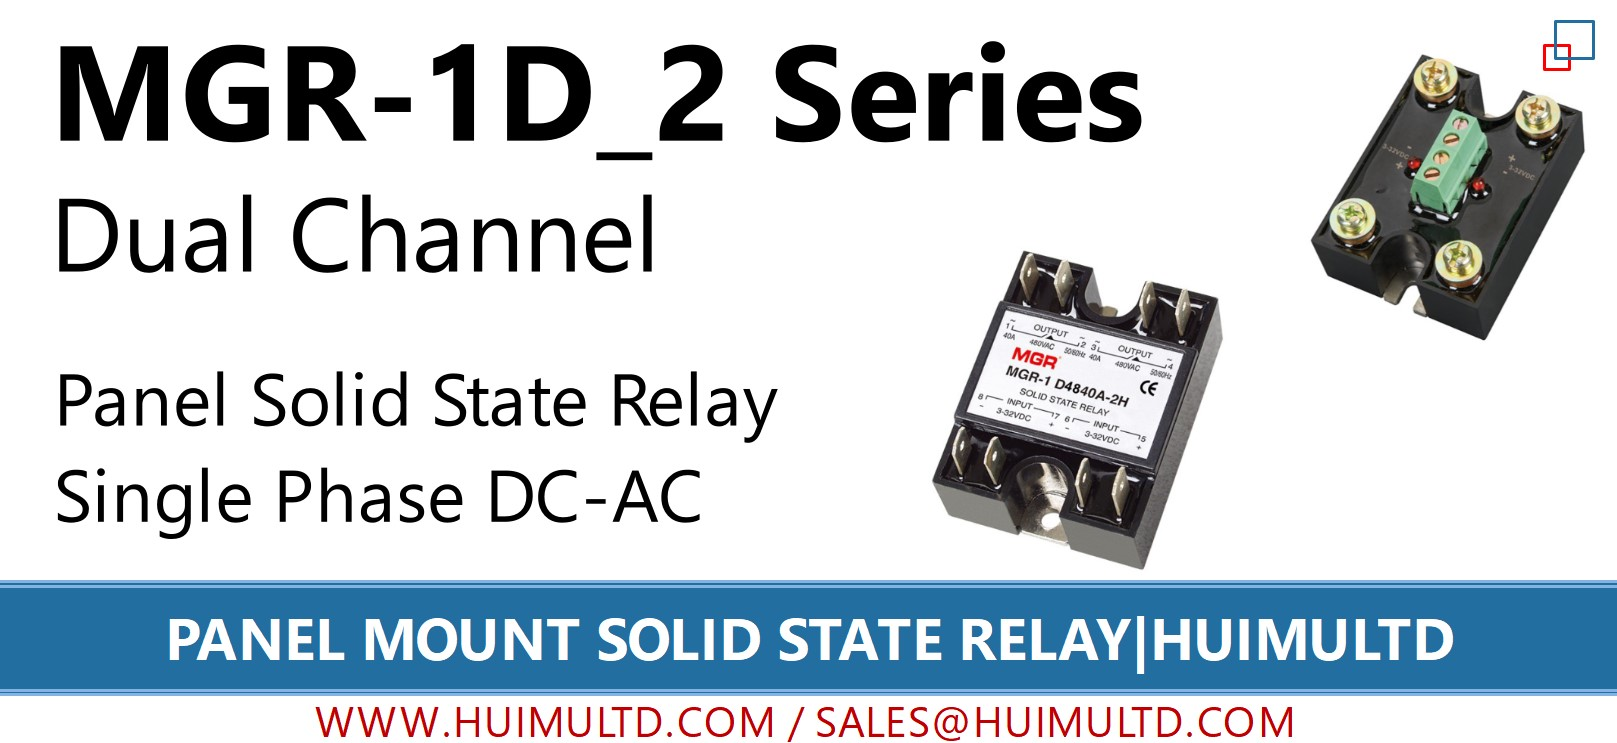 MGR-1D_2 Series Panel Mount Solid State Relay